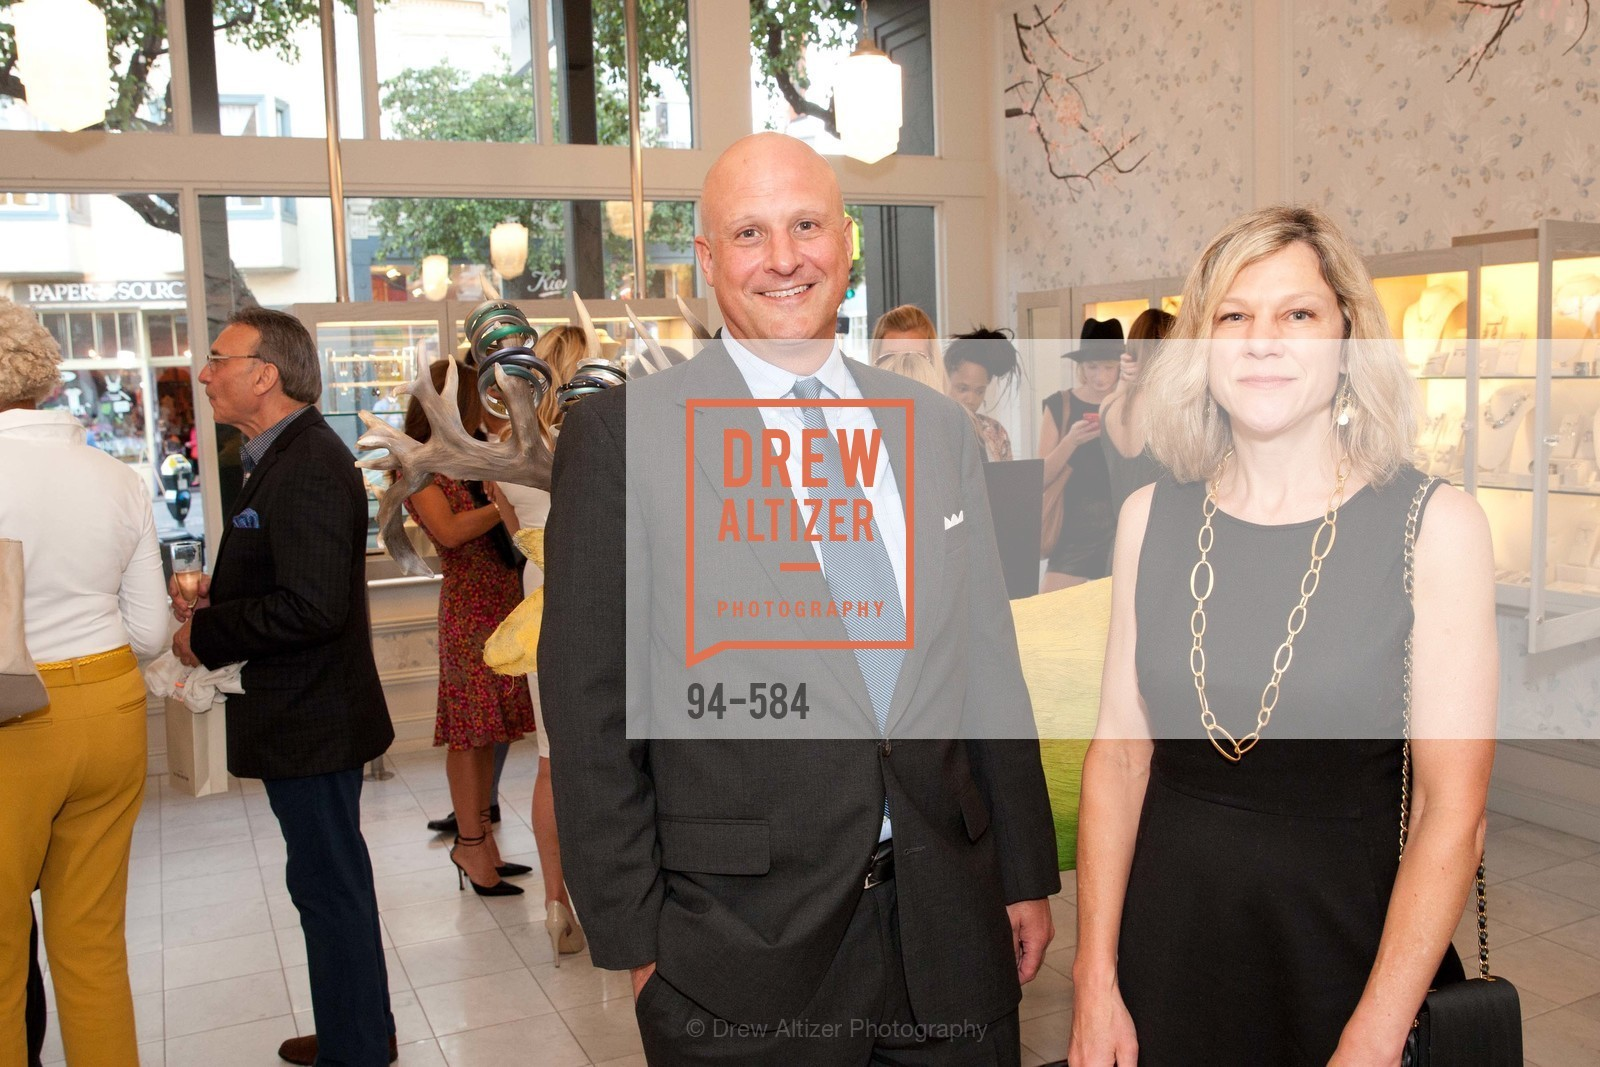 Mils Levine, Anya Levine, 141001-AlexisBittar-correct, US, October 1st, 2014,Drew Altizer, Drew Altizer Photography, full-service agency, private events, San Francisco photographer, photographer california